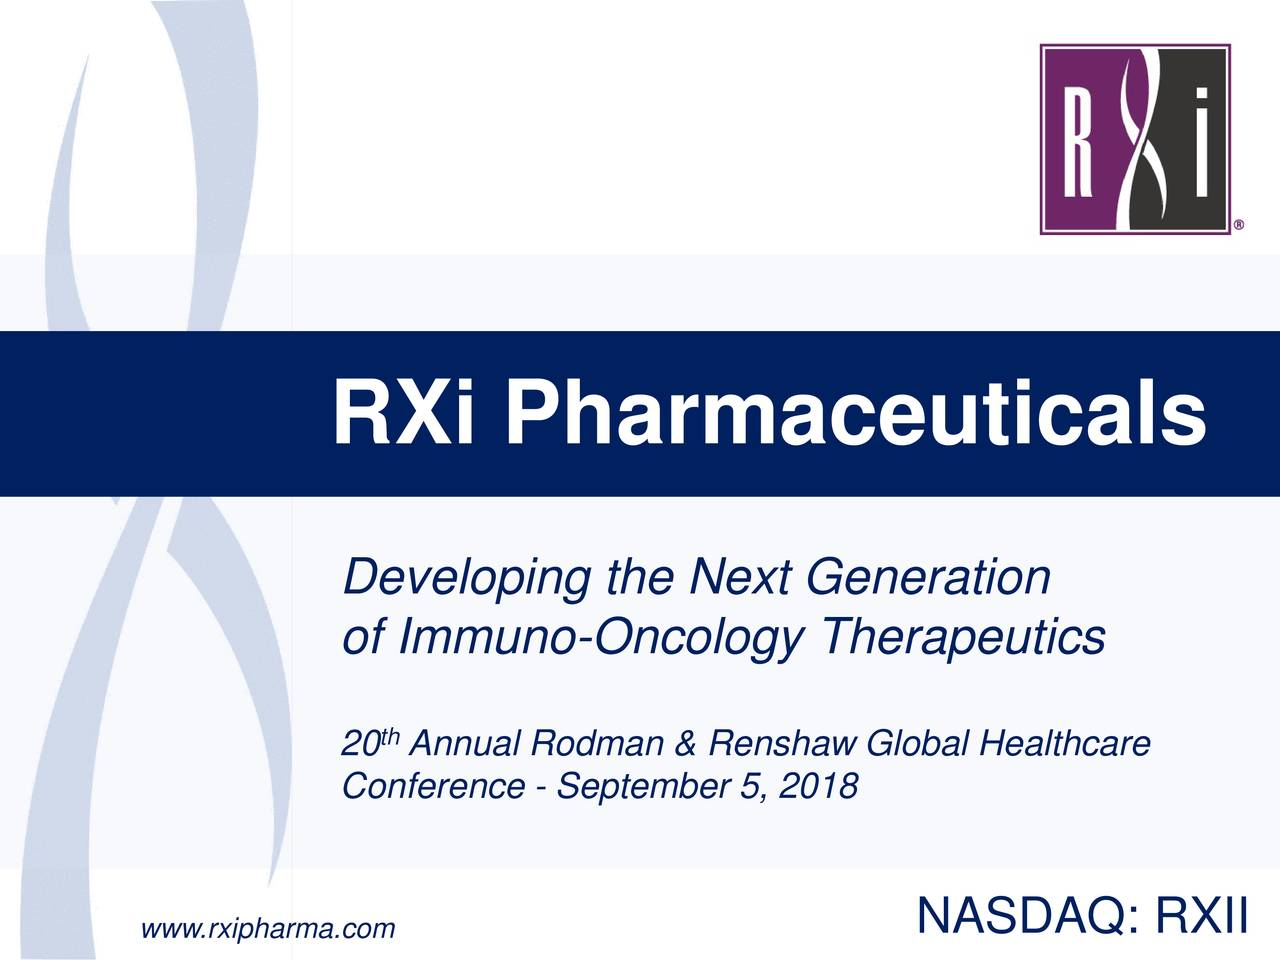 Developing the Next Generation of Immuno-Oncology Therapeutics 20 Annual Rodman & Renshaw Global Healthcare Conference - September 5, 2018 www.rxipharma.com NASDAQ: RXII